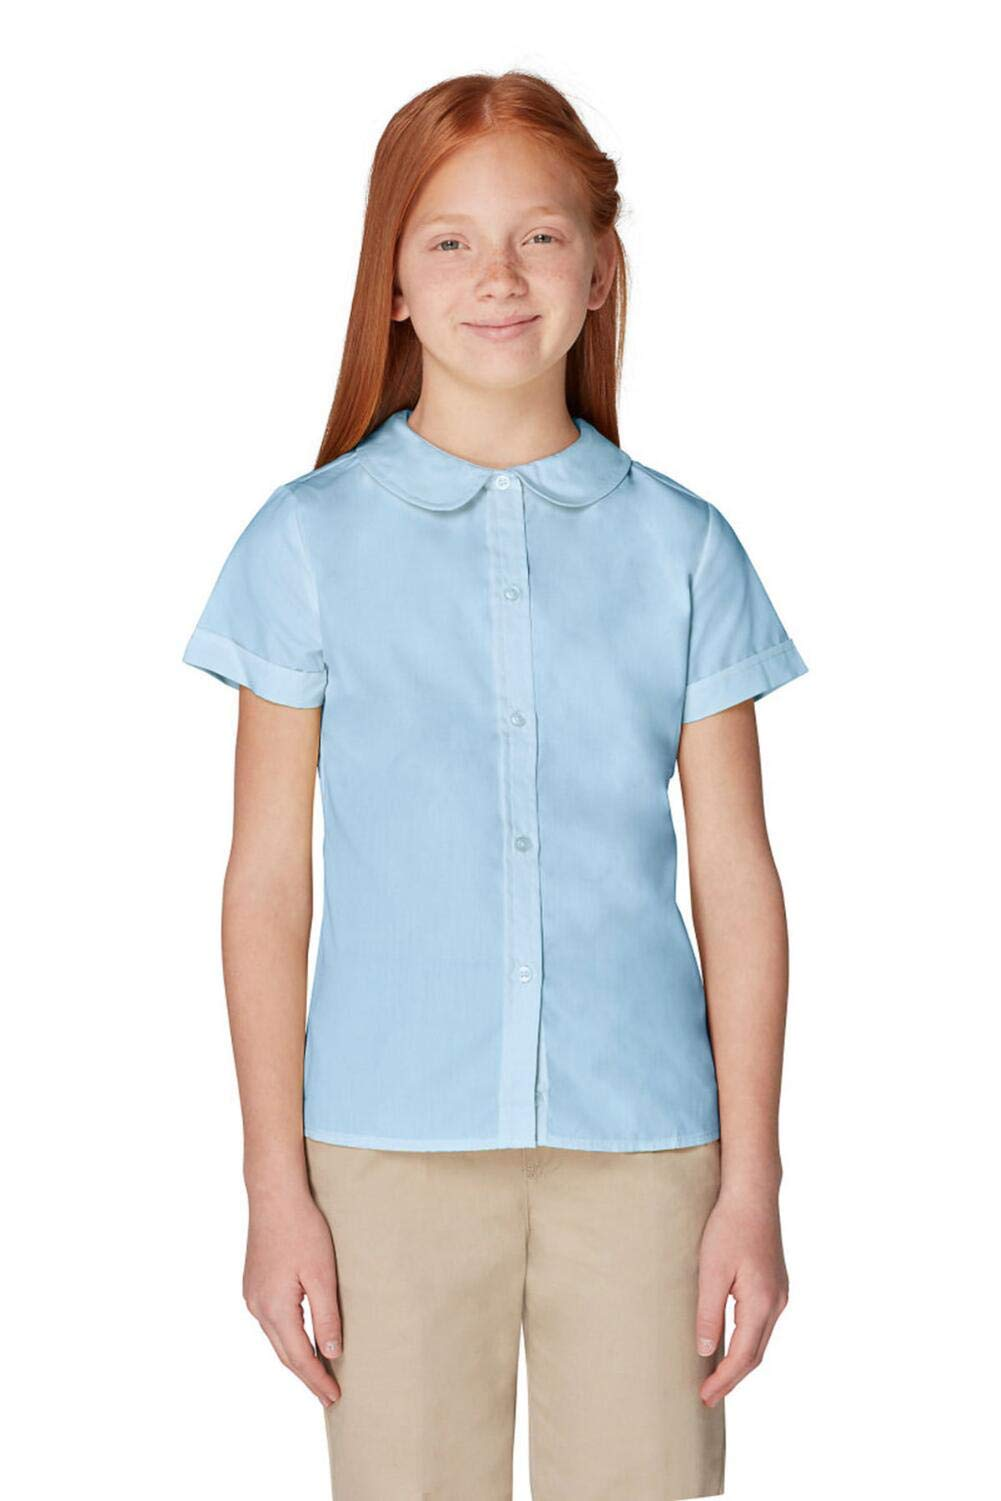 French Toast Girls Size' Short Sleeve Peter Pan Collar Blouse, Light Blue, 20.5 Plus